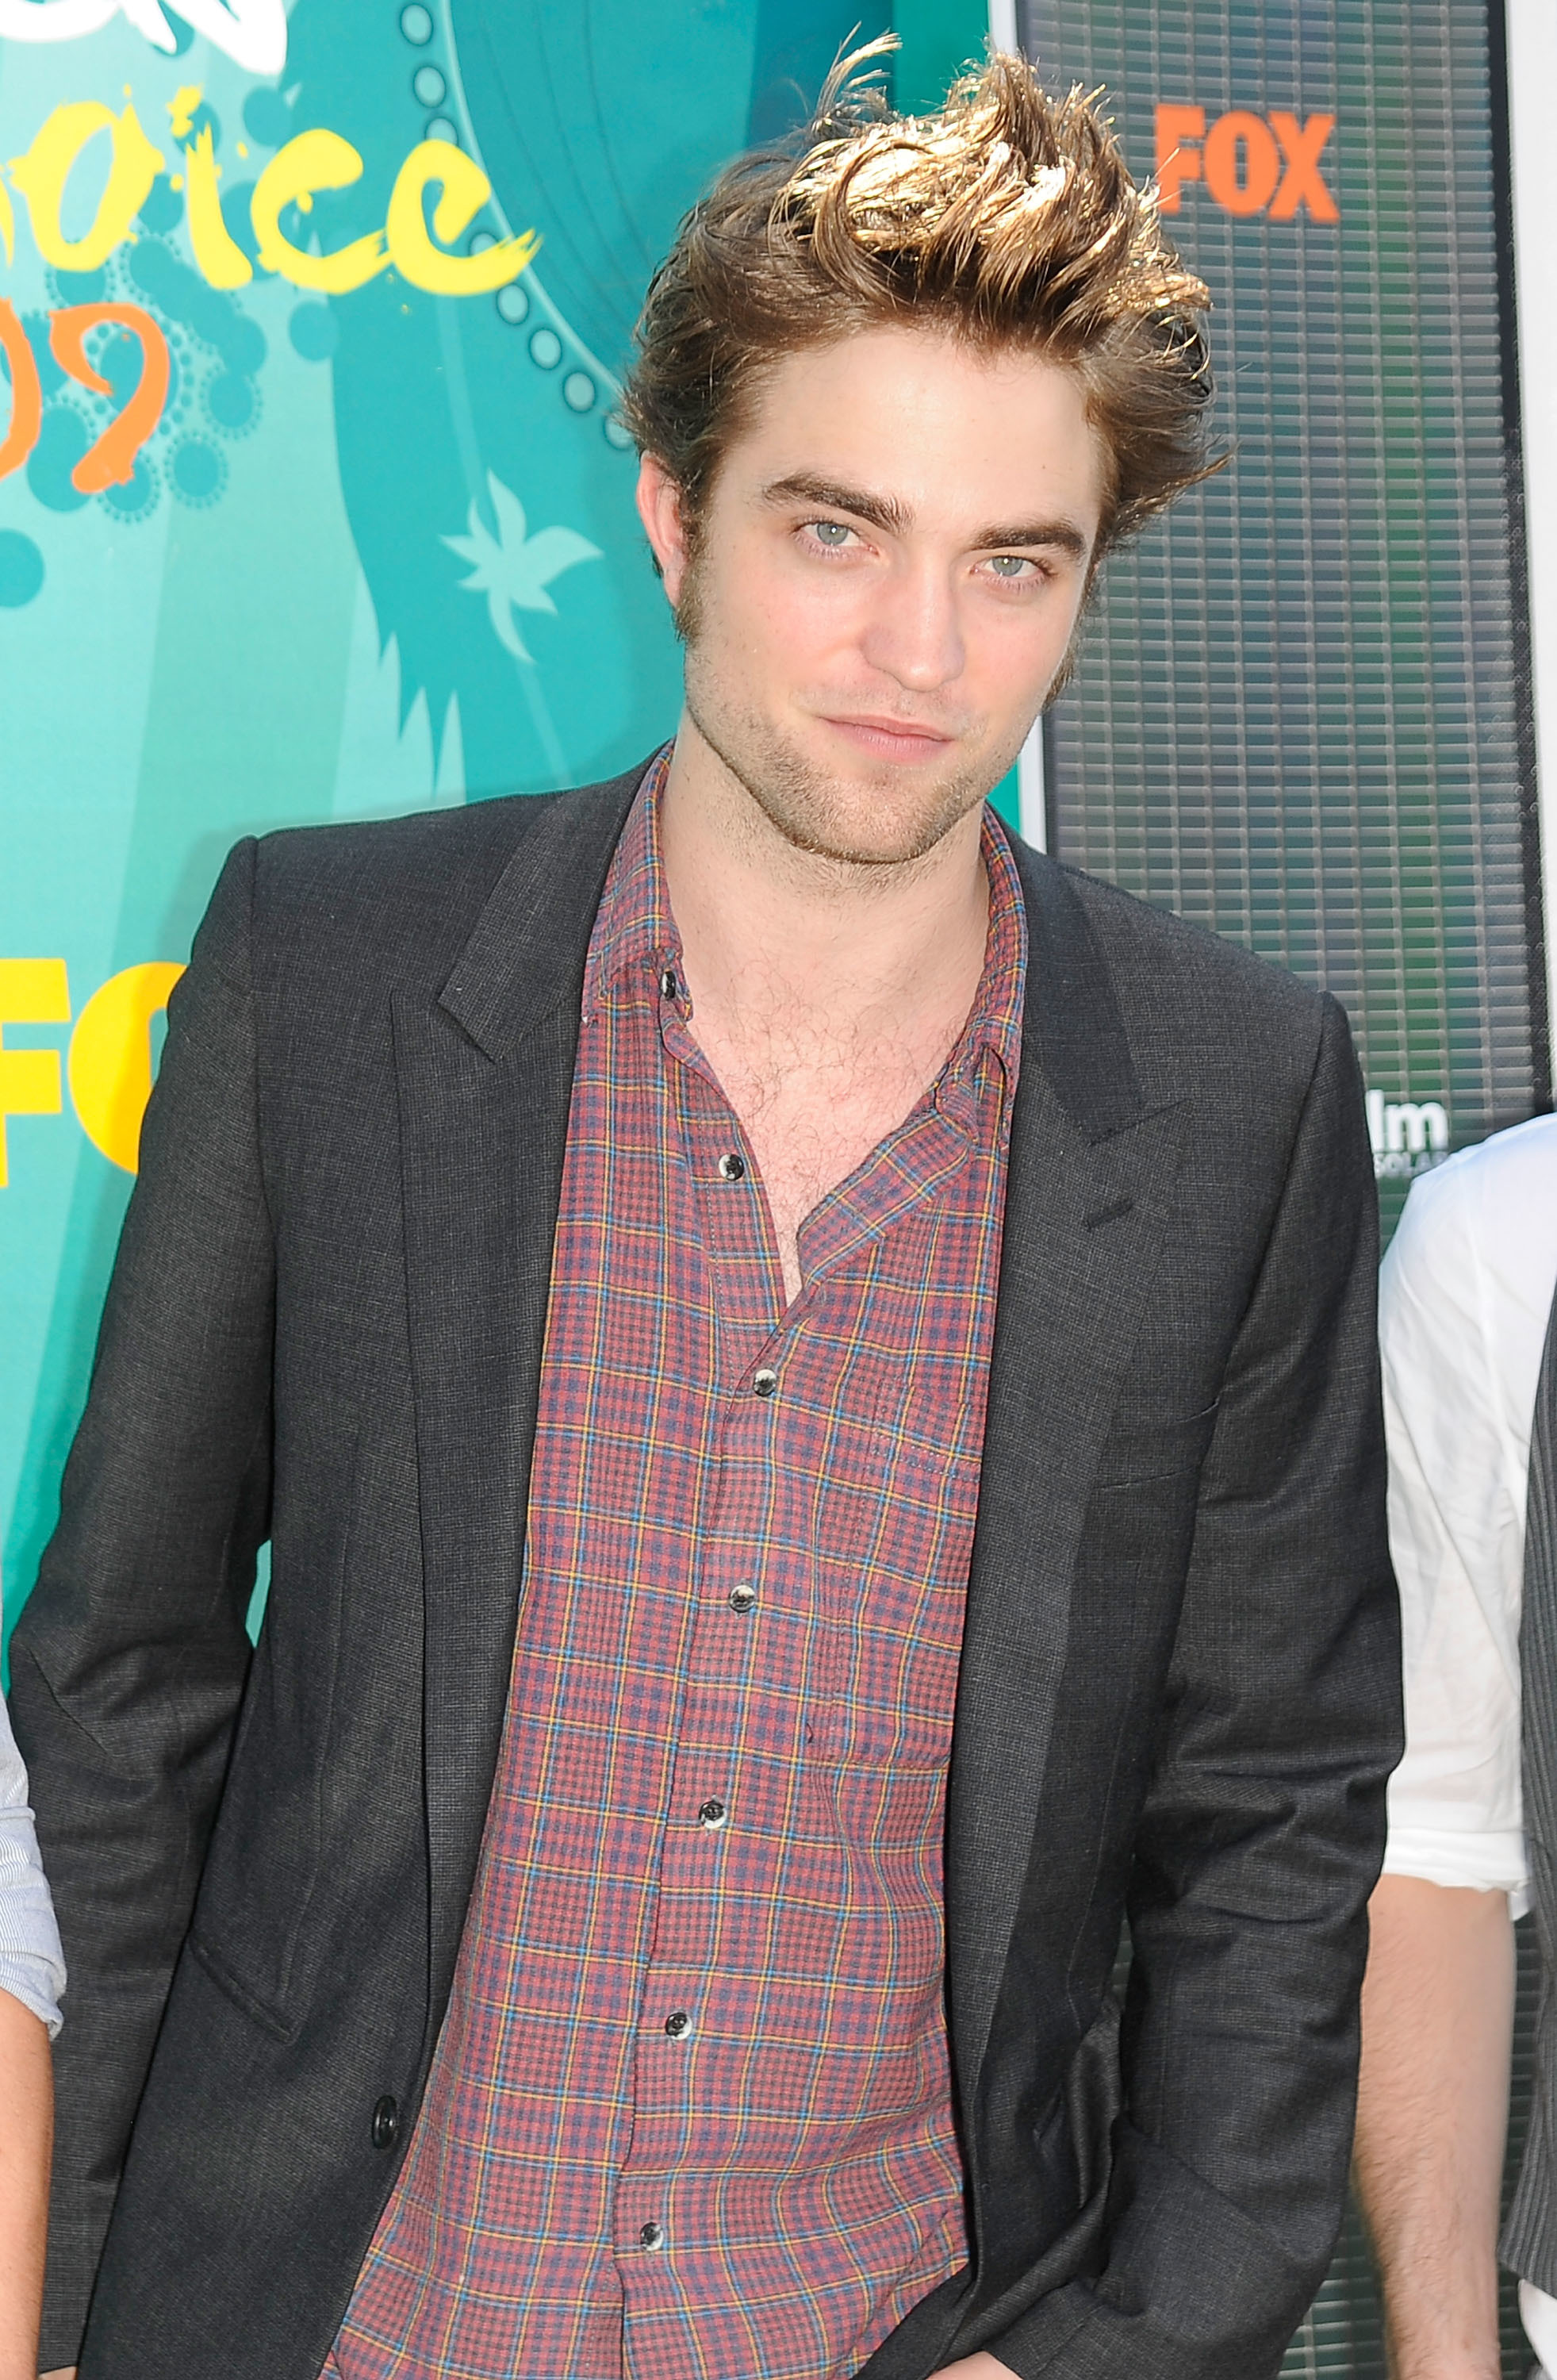 Robert Pattinson attends the 2009 Teen Choice Awards in Los Angeles on August 9, 2009.